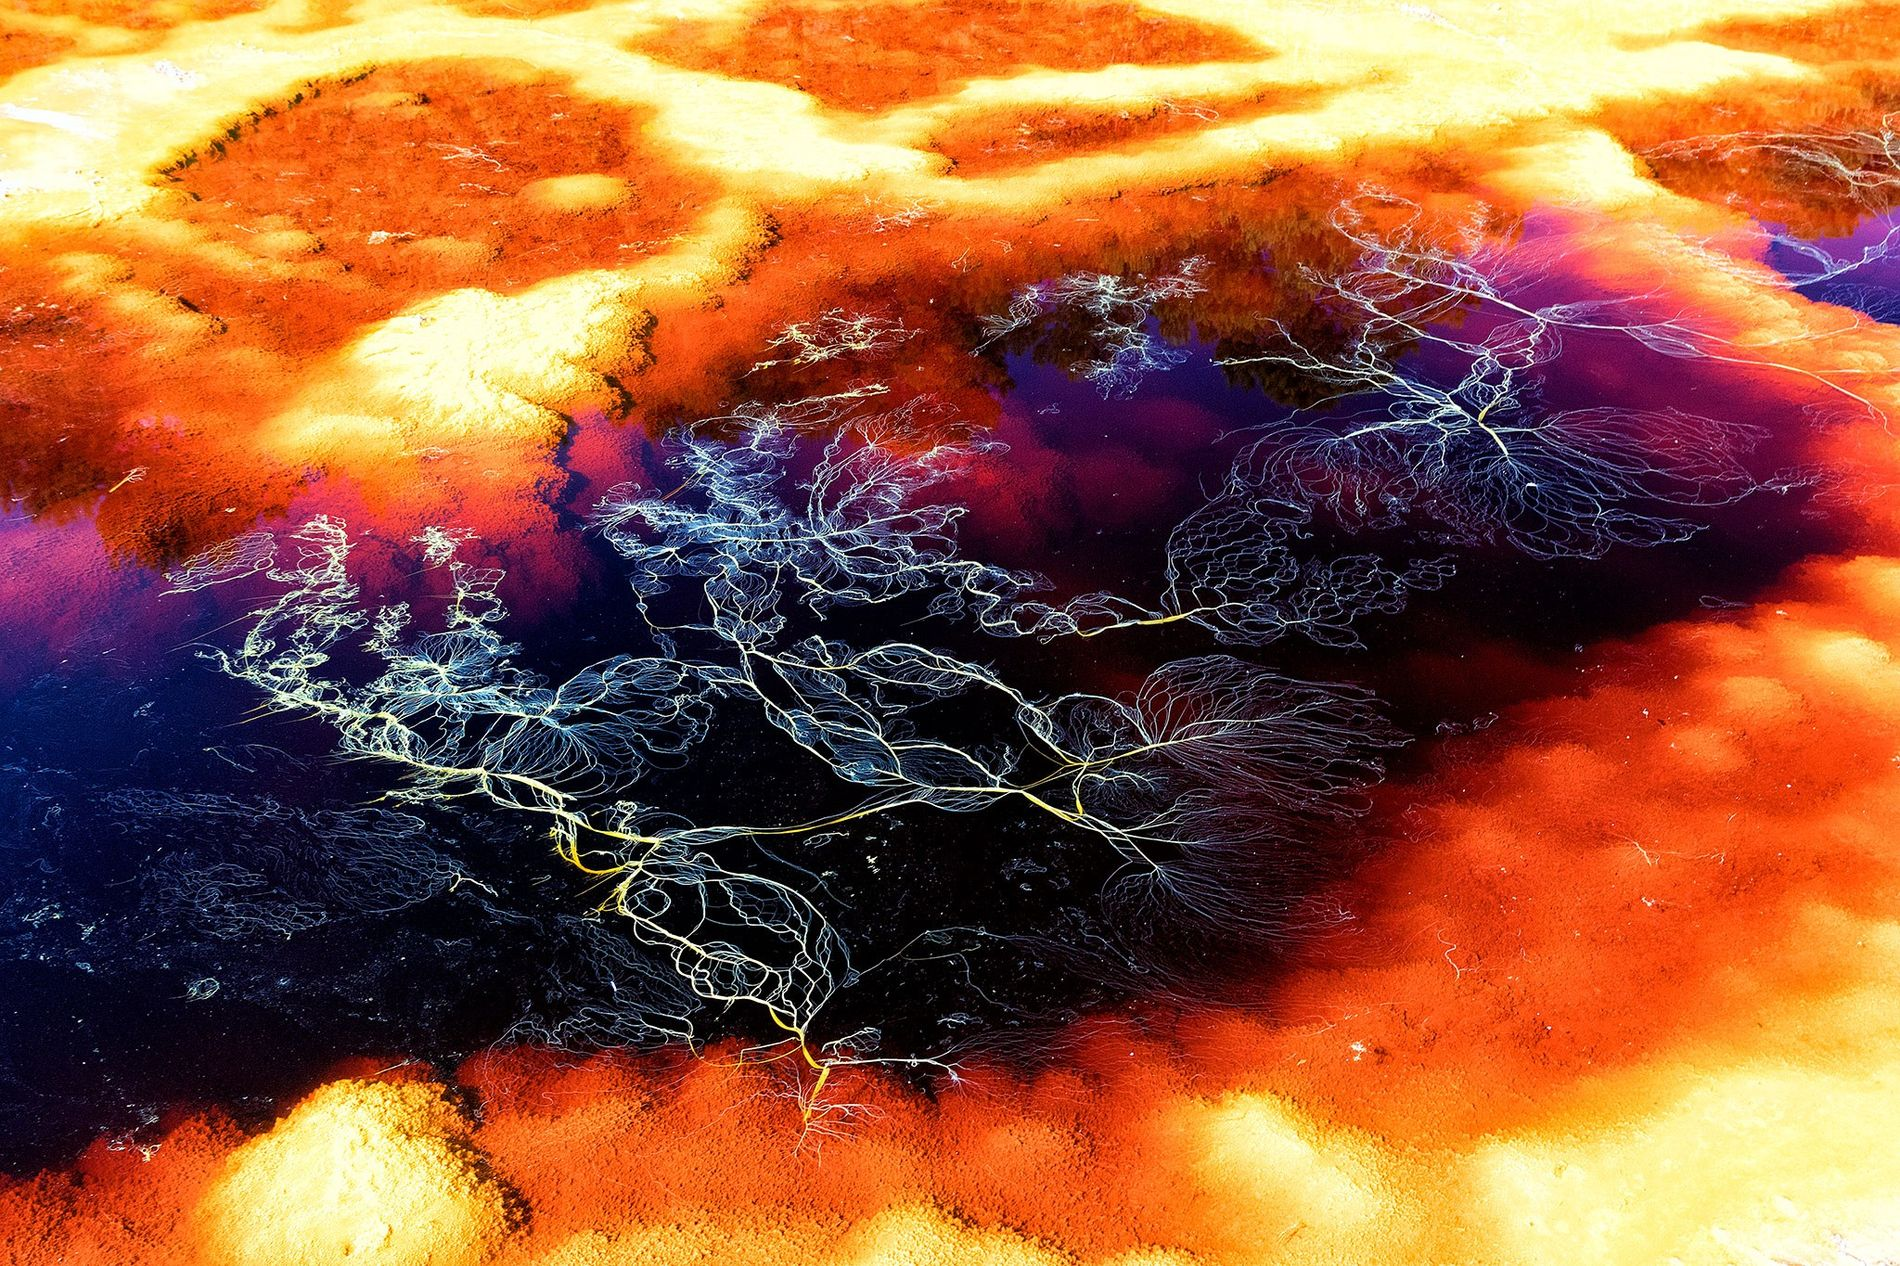 The Mars-like minerals of the Rio Tinto region in Spain have led many scientists to study ...